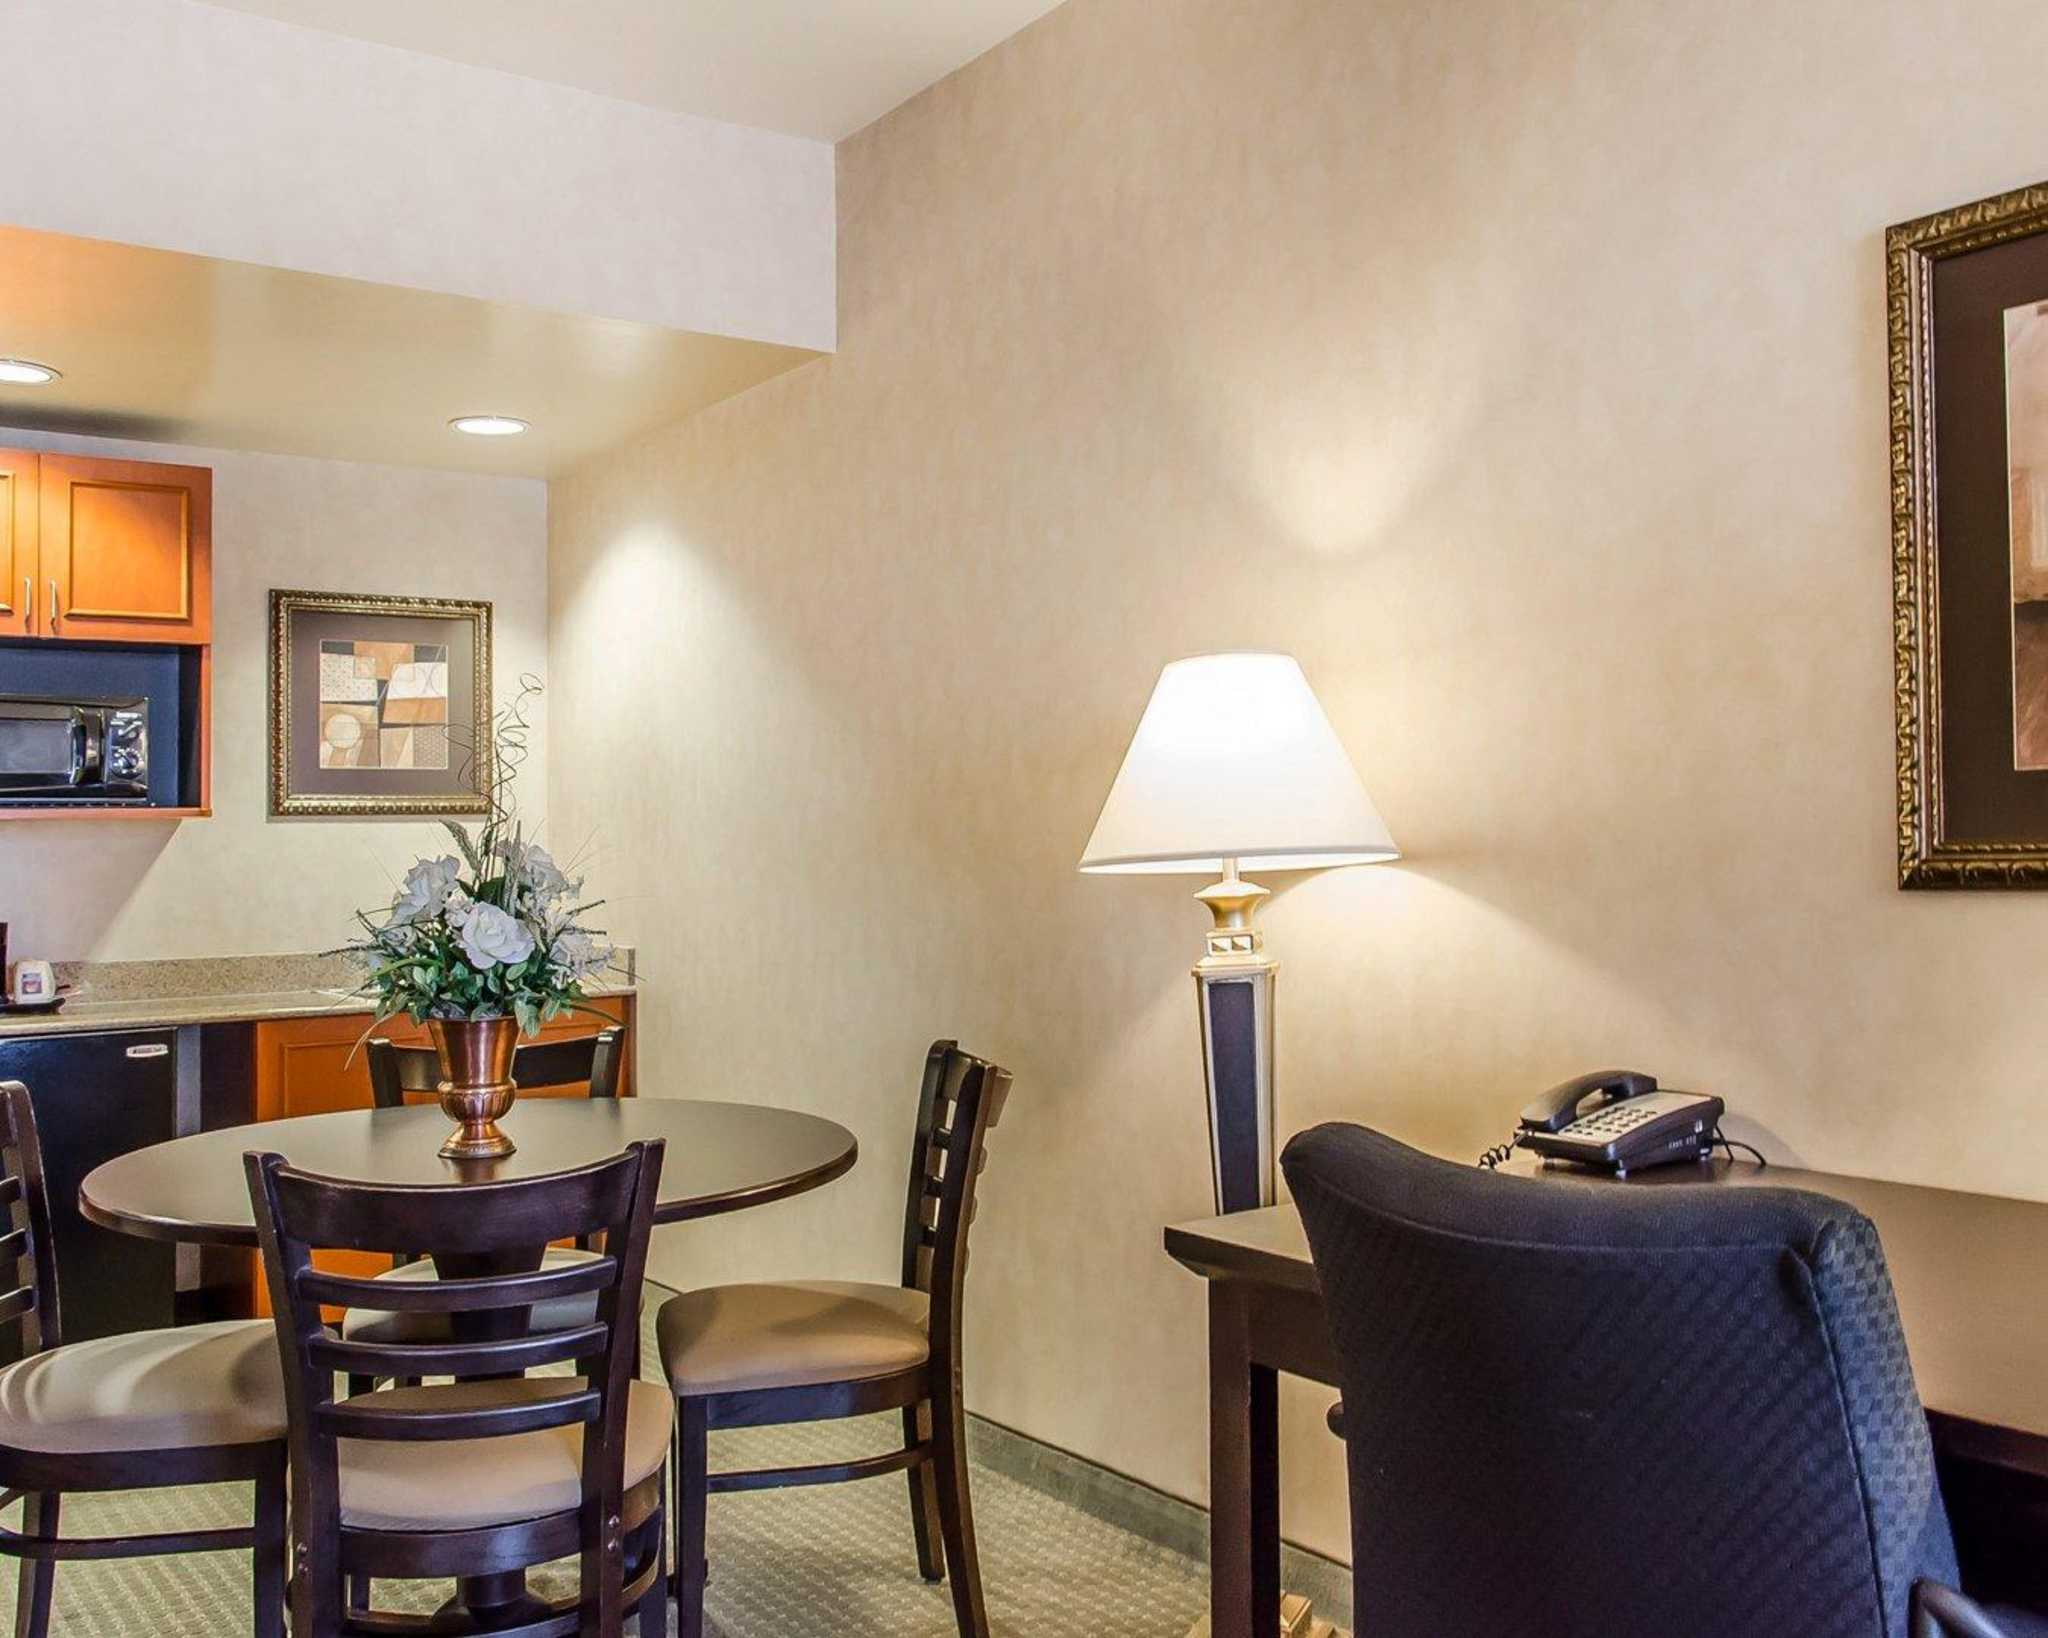 Comfort Inn & Suites Jerome - Twin Falls image 15